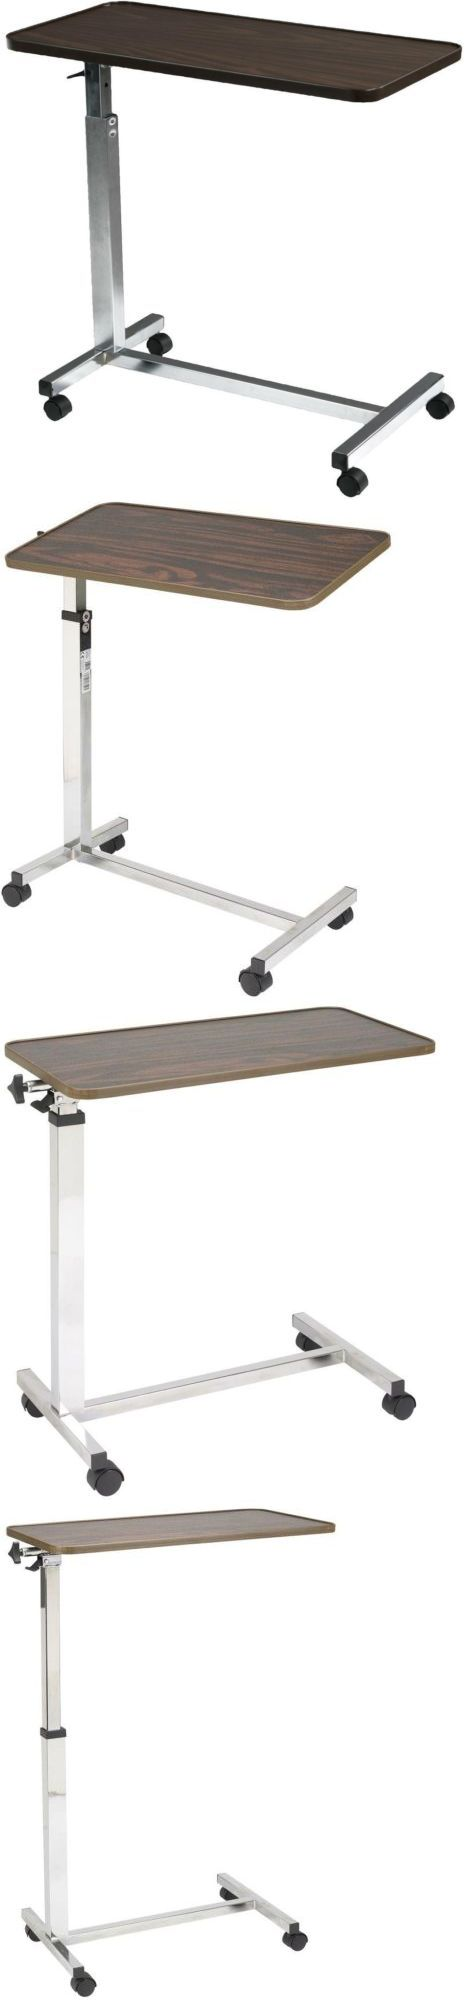 Overbed table food tray non tilt top bed hospital adjustable rolling - Bed And Chair Tables Hospital Overbed Table Tilt Top Adjustable Rolling Wooden Drive Medical